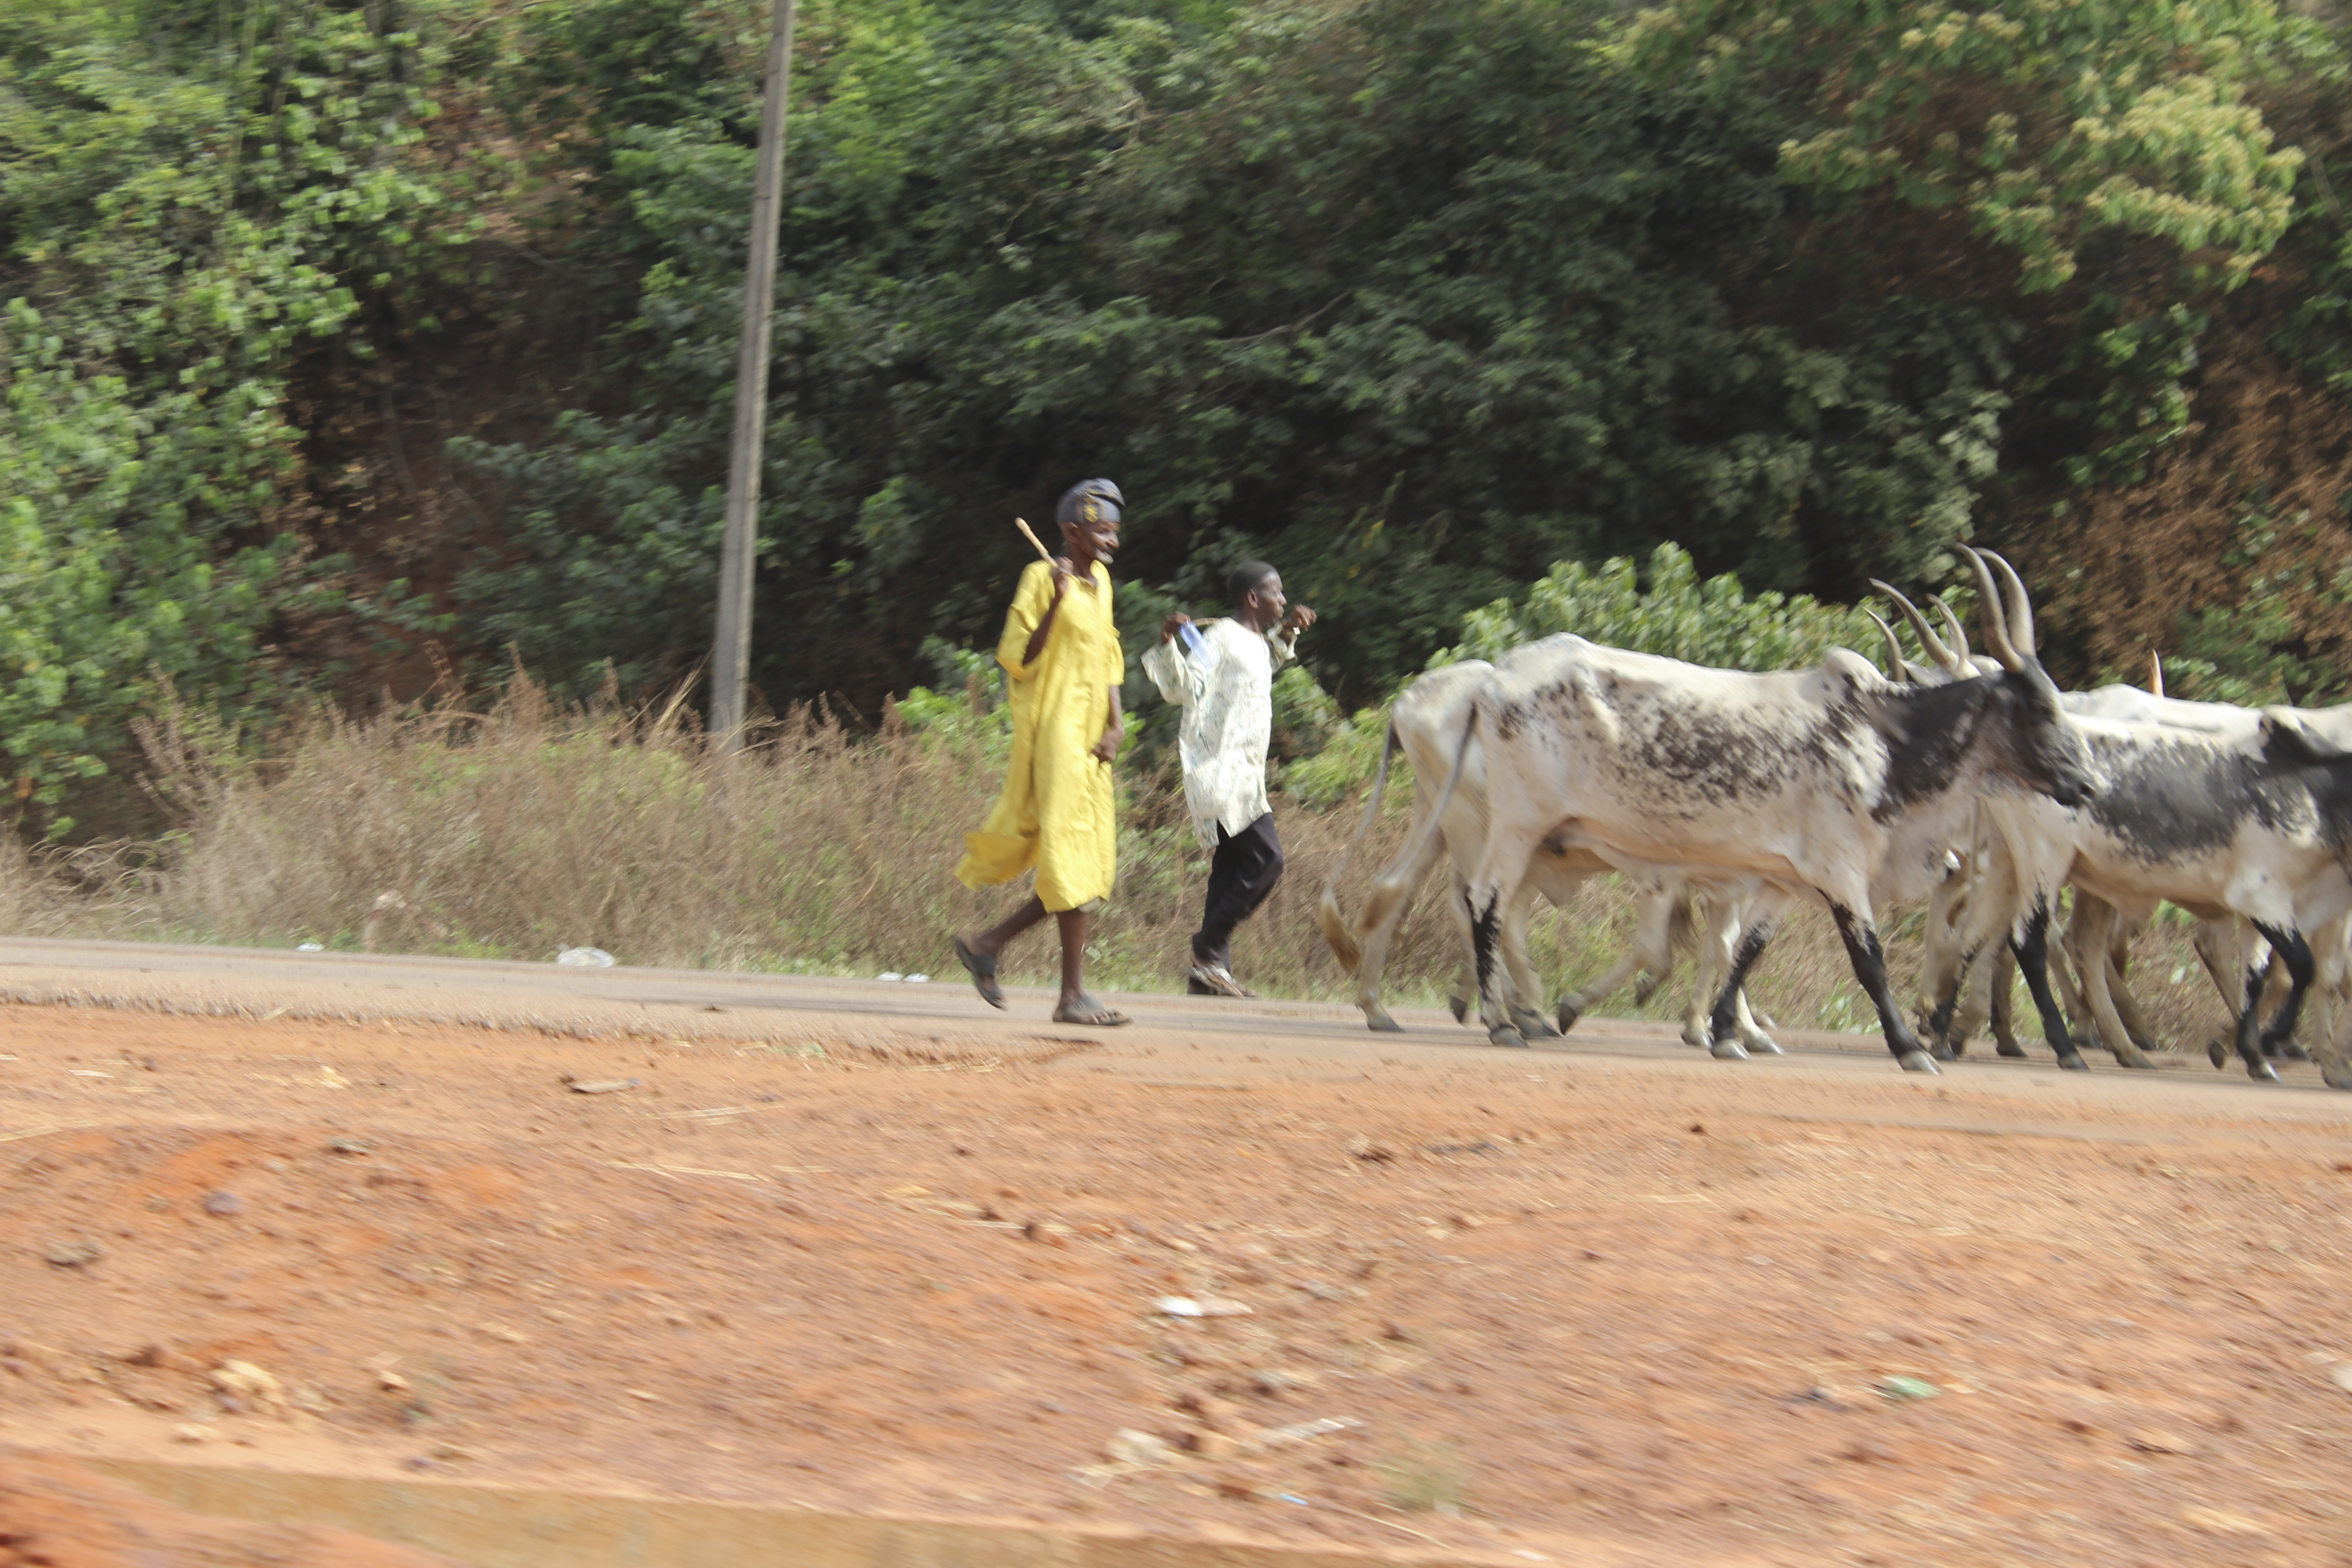 Fulani Herdsmen and Cattle in Enugu State, Nigeria. #JujuFilms